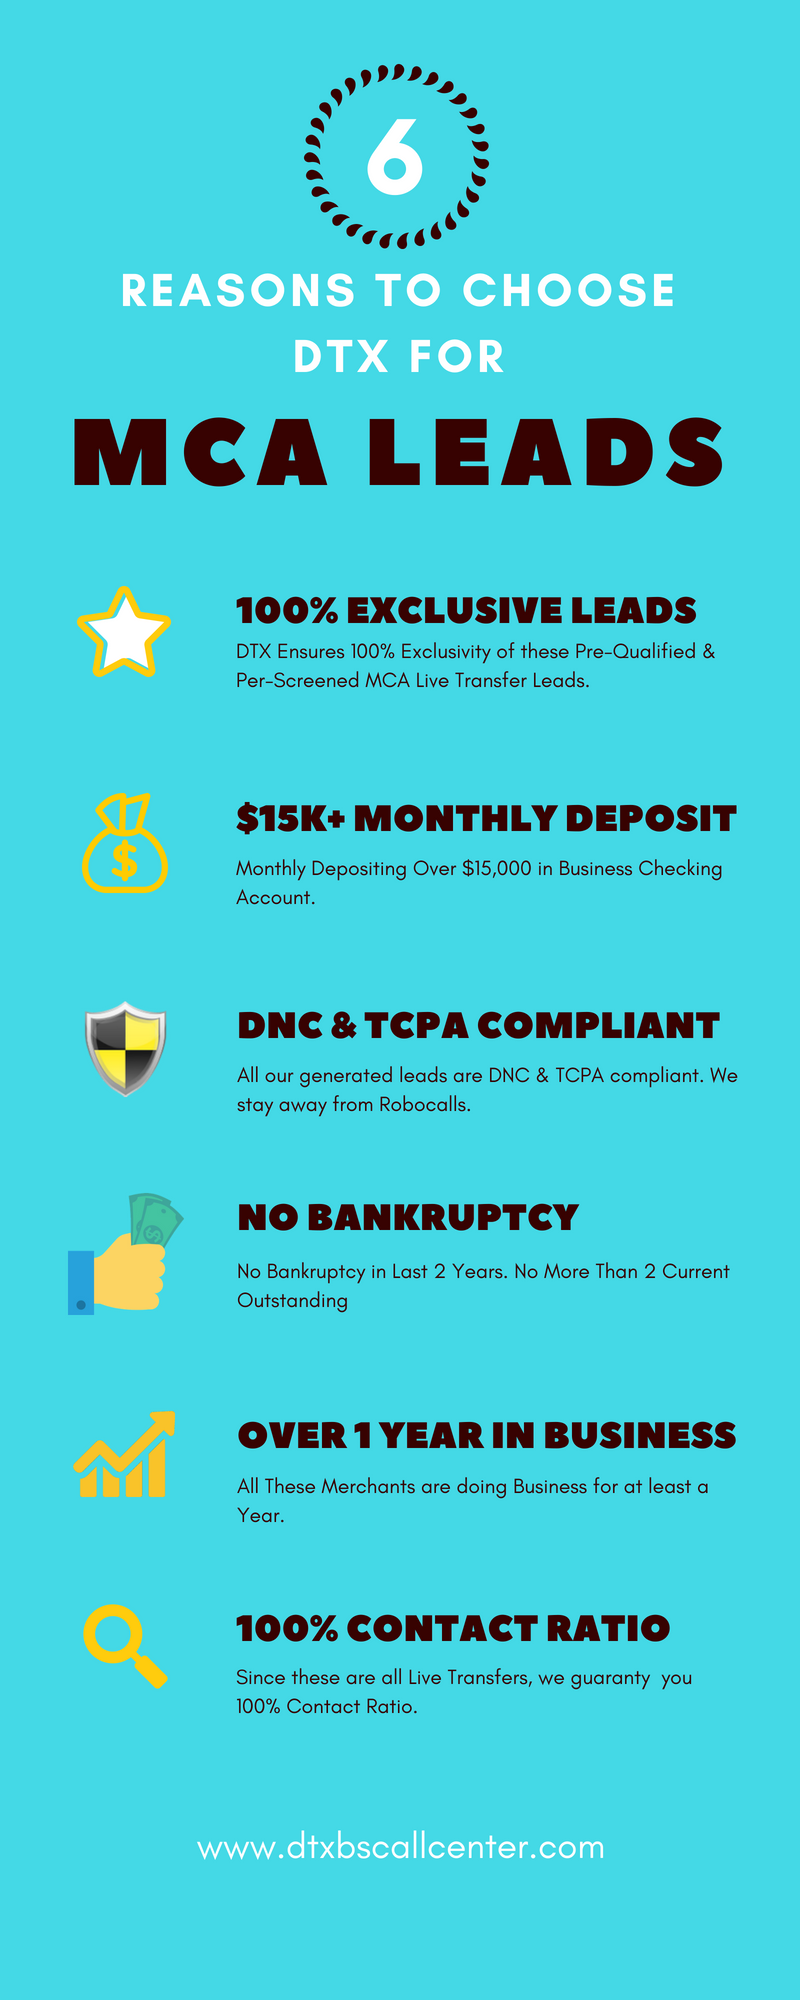 Benefits of DTX Merchant Cash Advance Leads Infographic